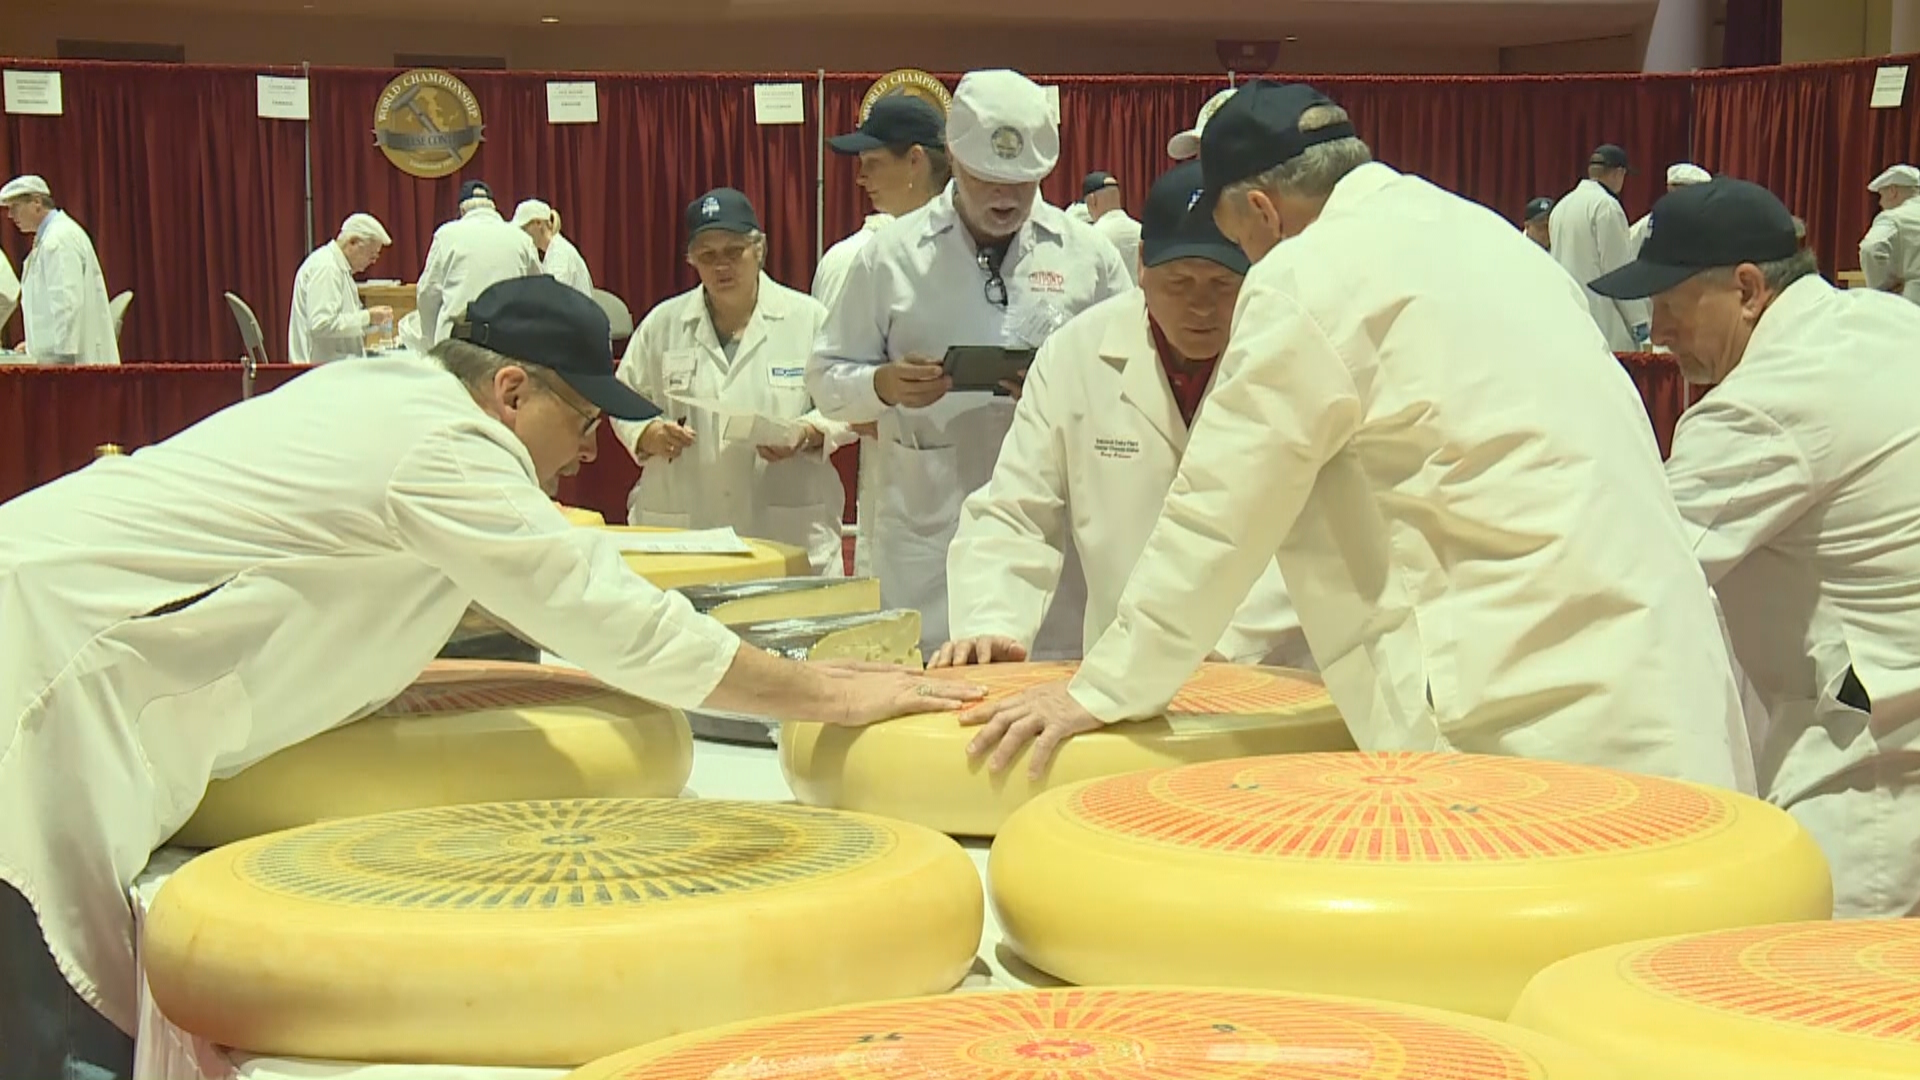 The World Championship Cheese Contest in Madison, March 6, 2018. (WMTV)